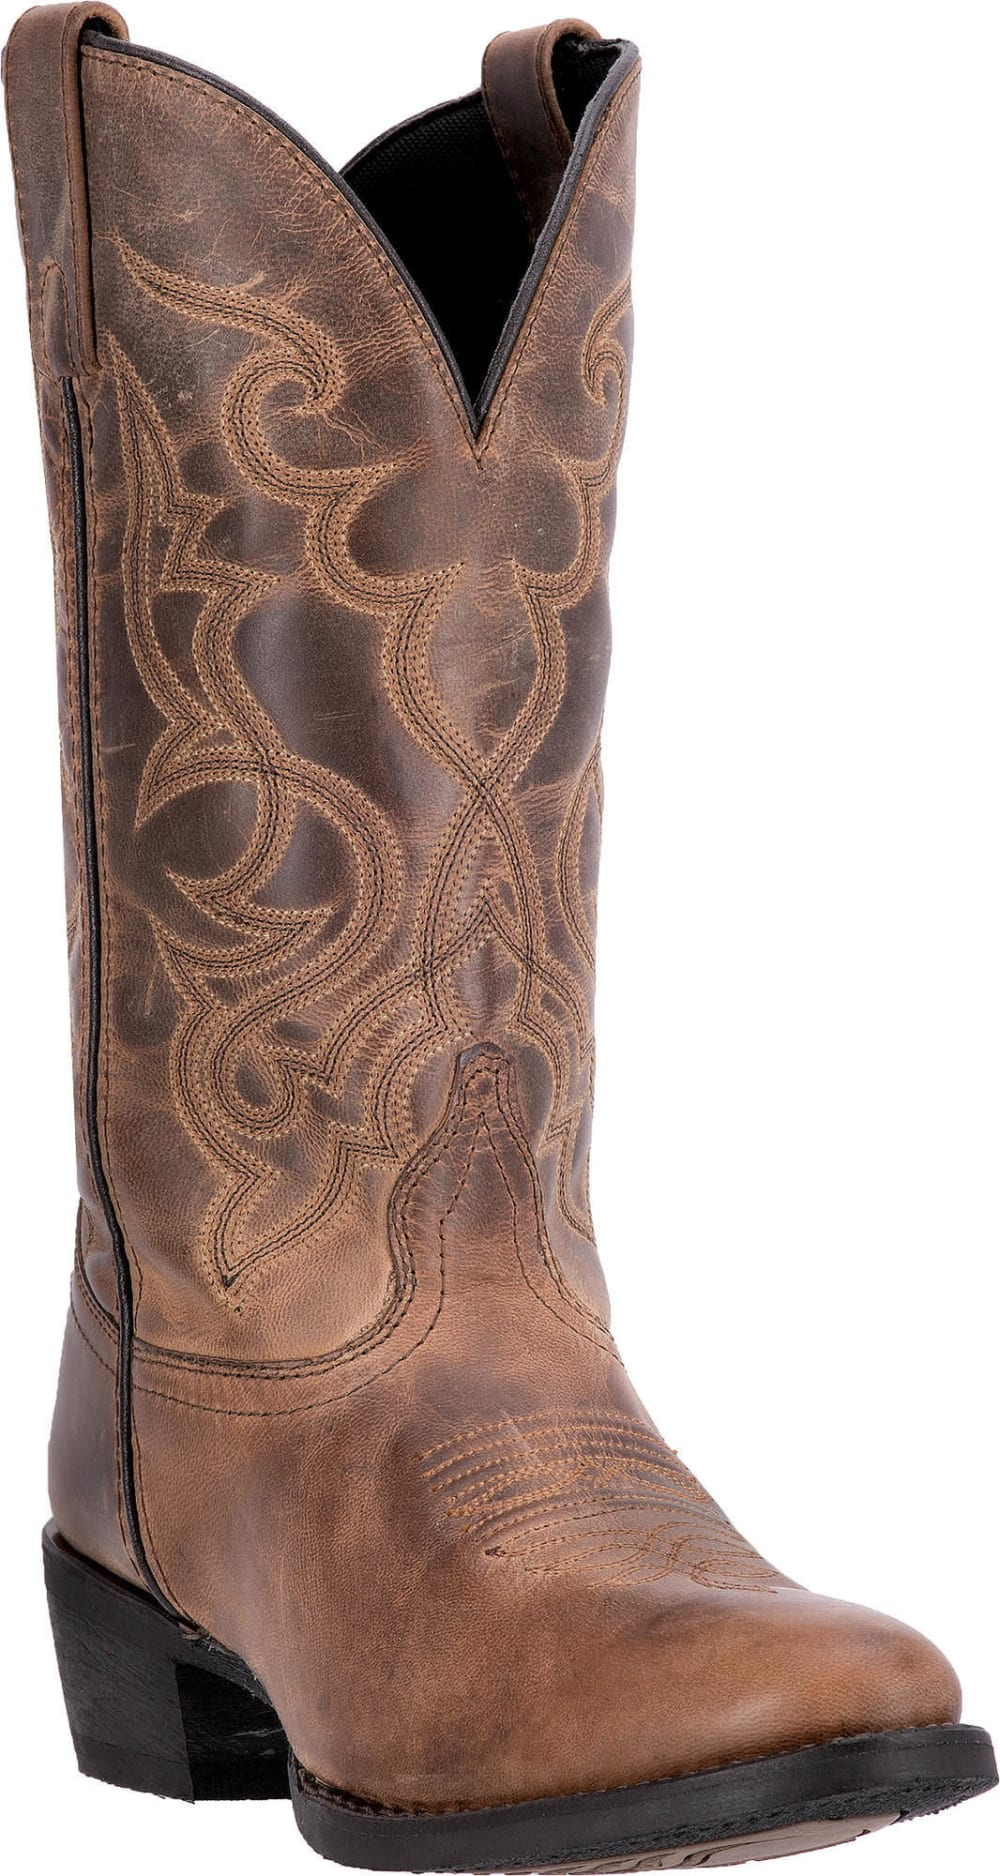 LAREDO Women's Maddie Cowboy Boots, Tan, Wide Sizes - TAN